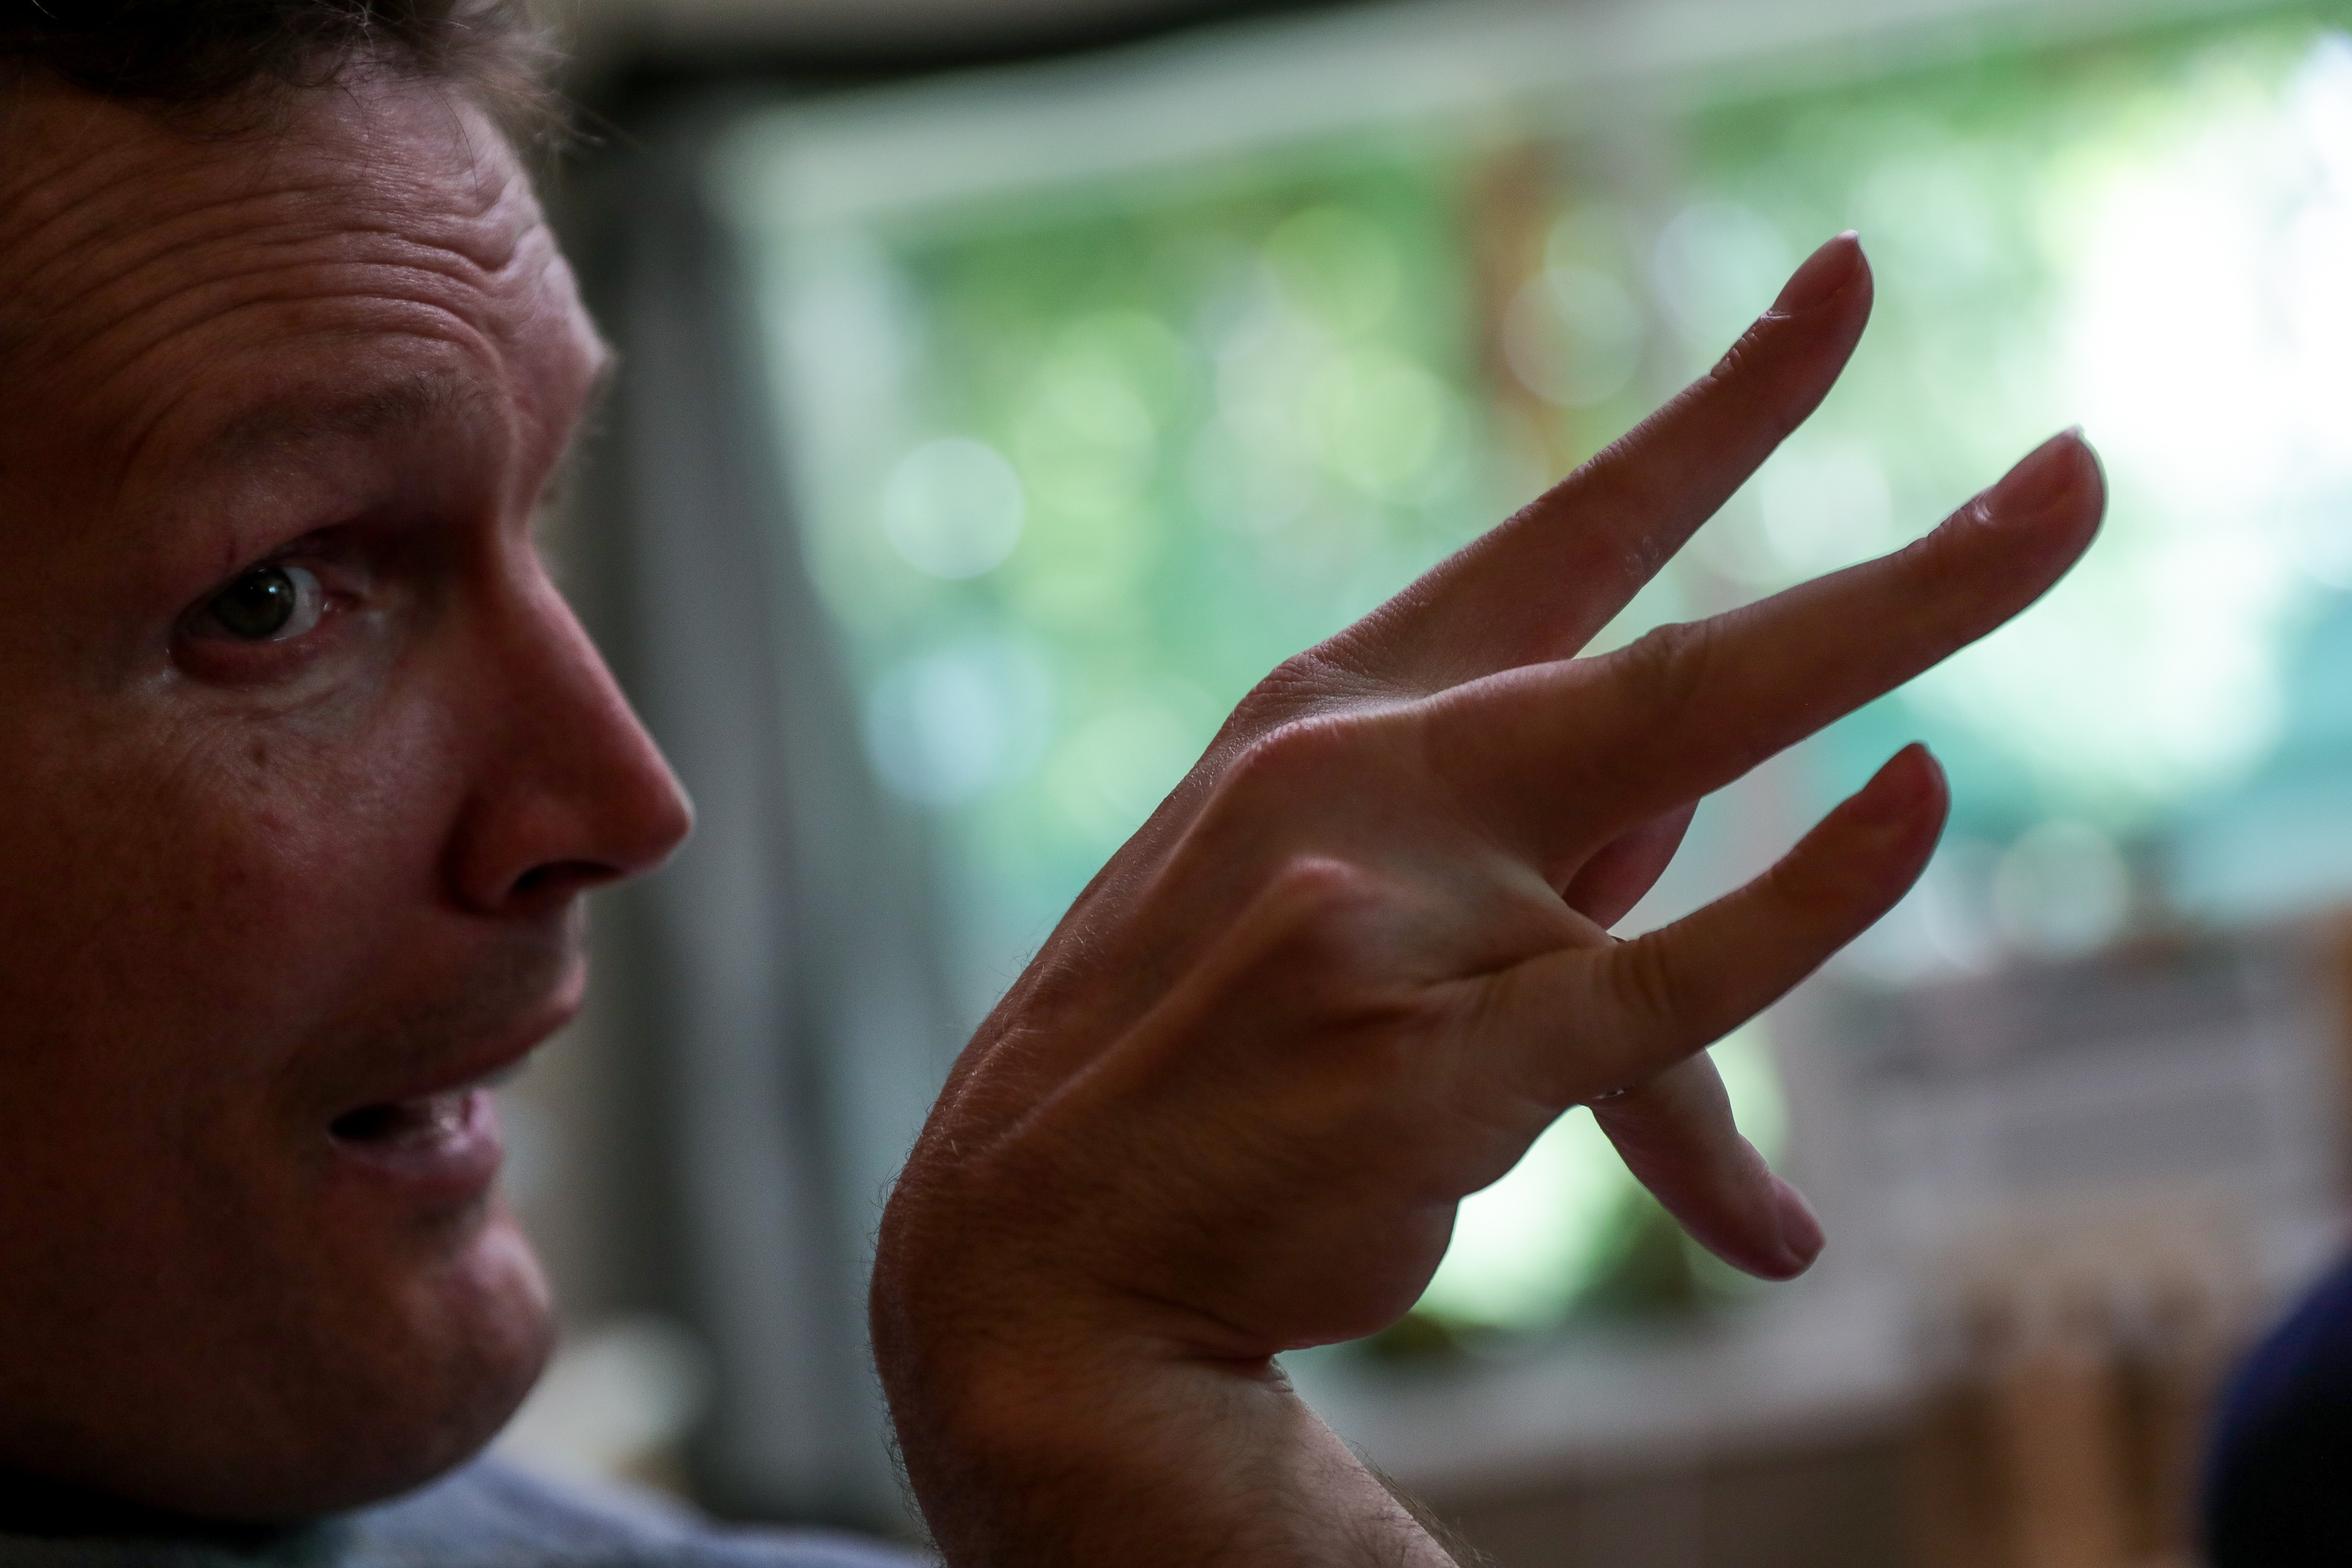 Orin Voorheis uses an abbreviated sign language, fondly referred to as Orin-ese by friends and family, to communicate at home in Pleasant Grove, Utah, on Tuesday, July 10, 2018.